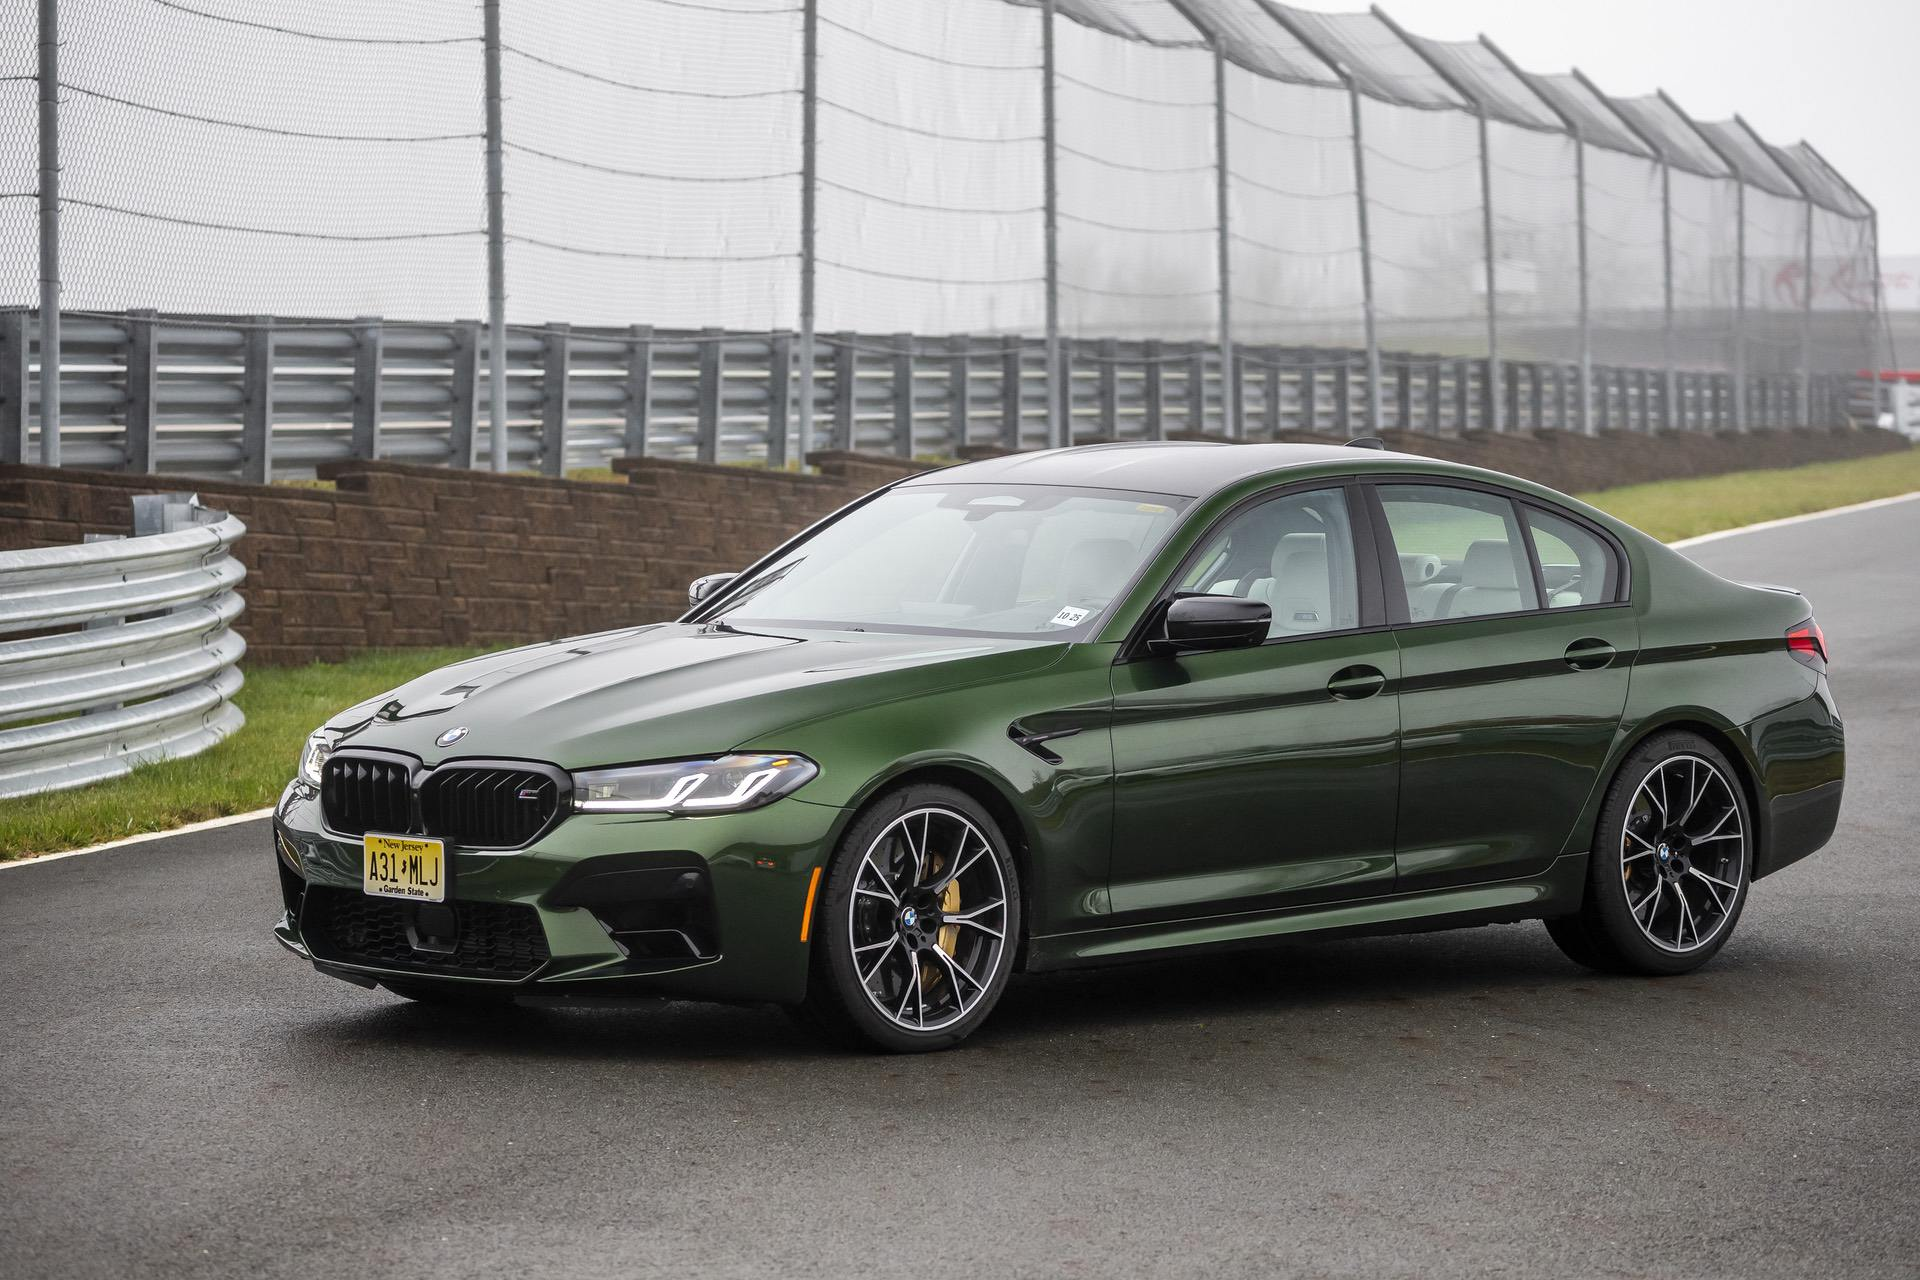 Video: BMW M5 Competition review goes over all aspects of refreshed model